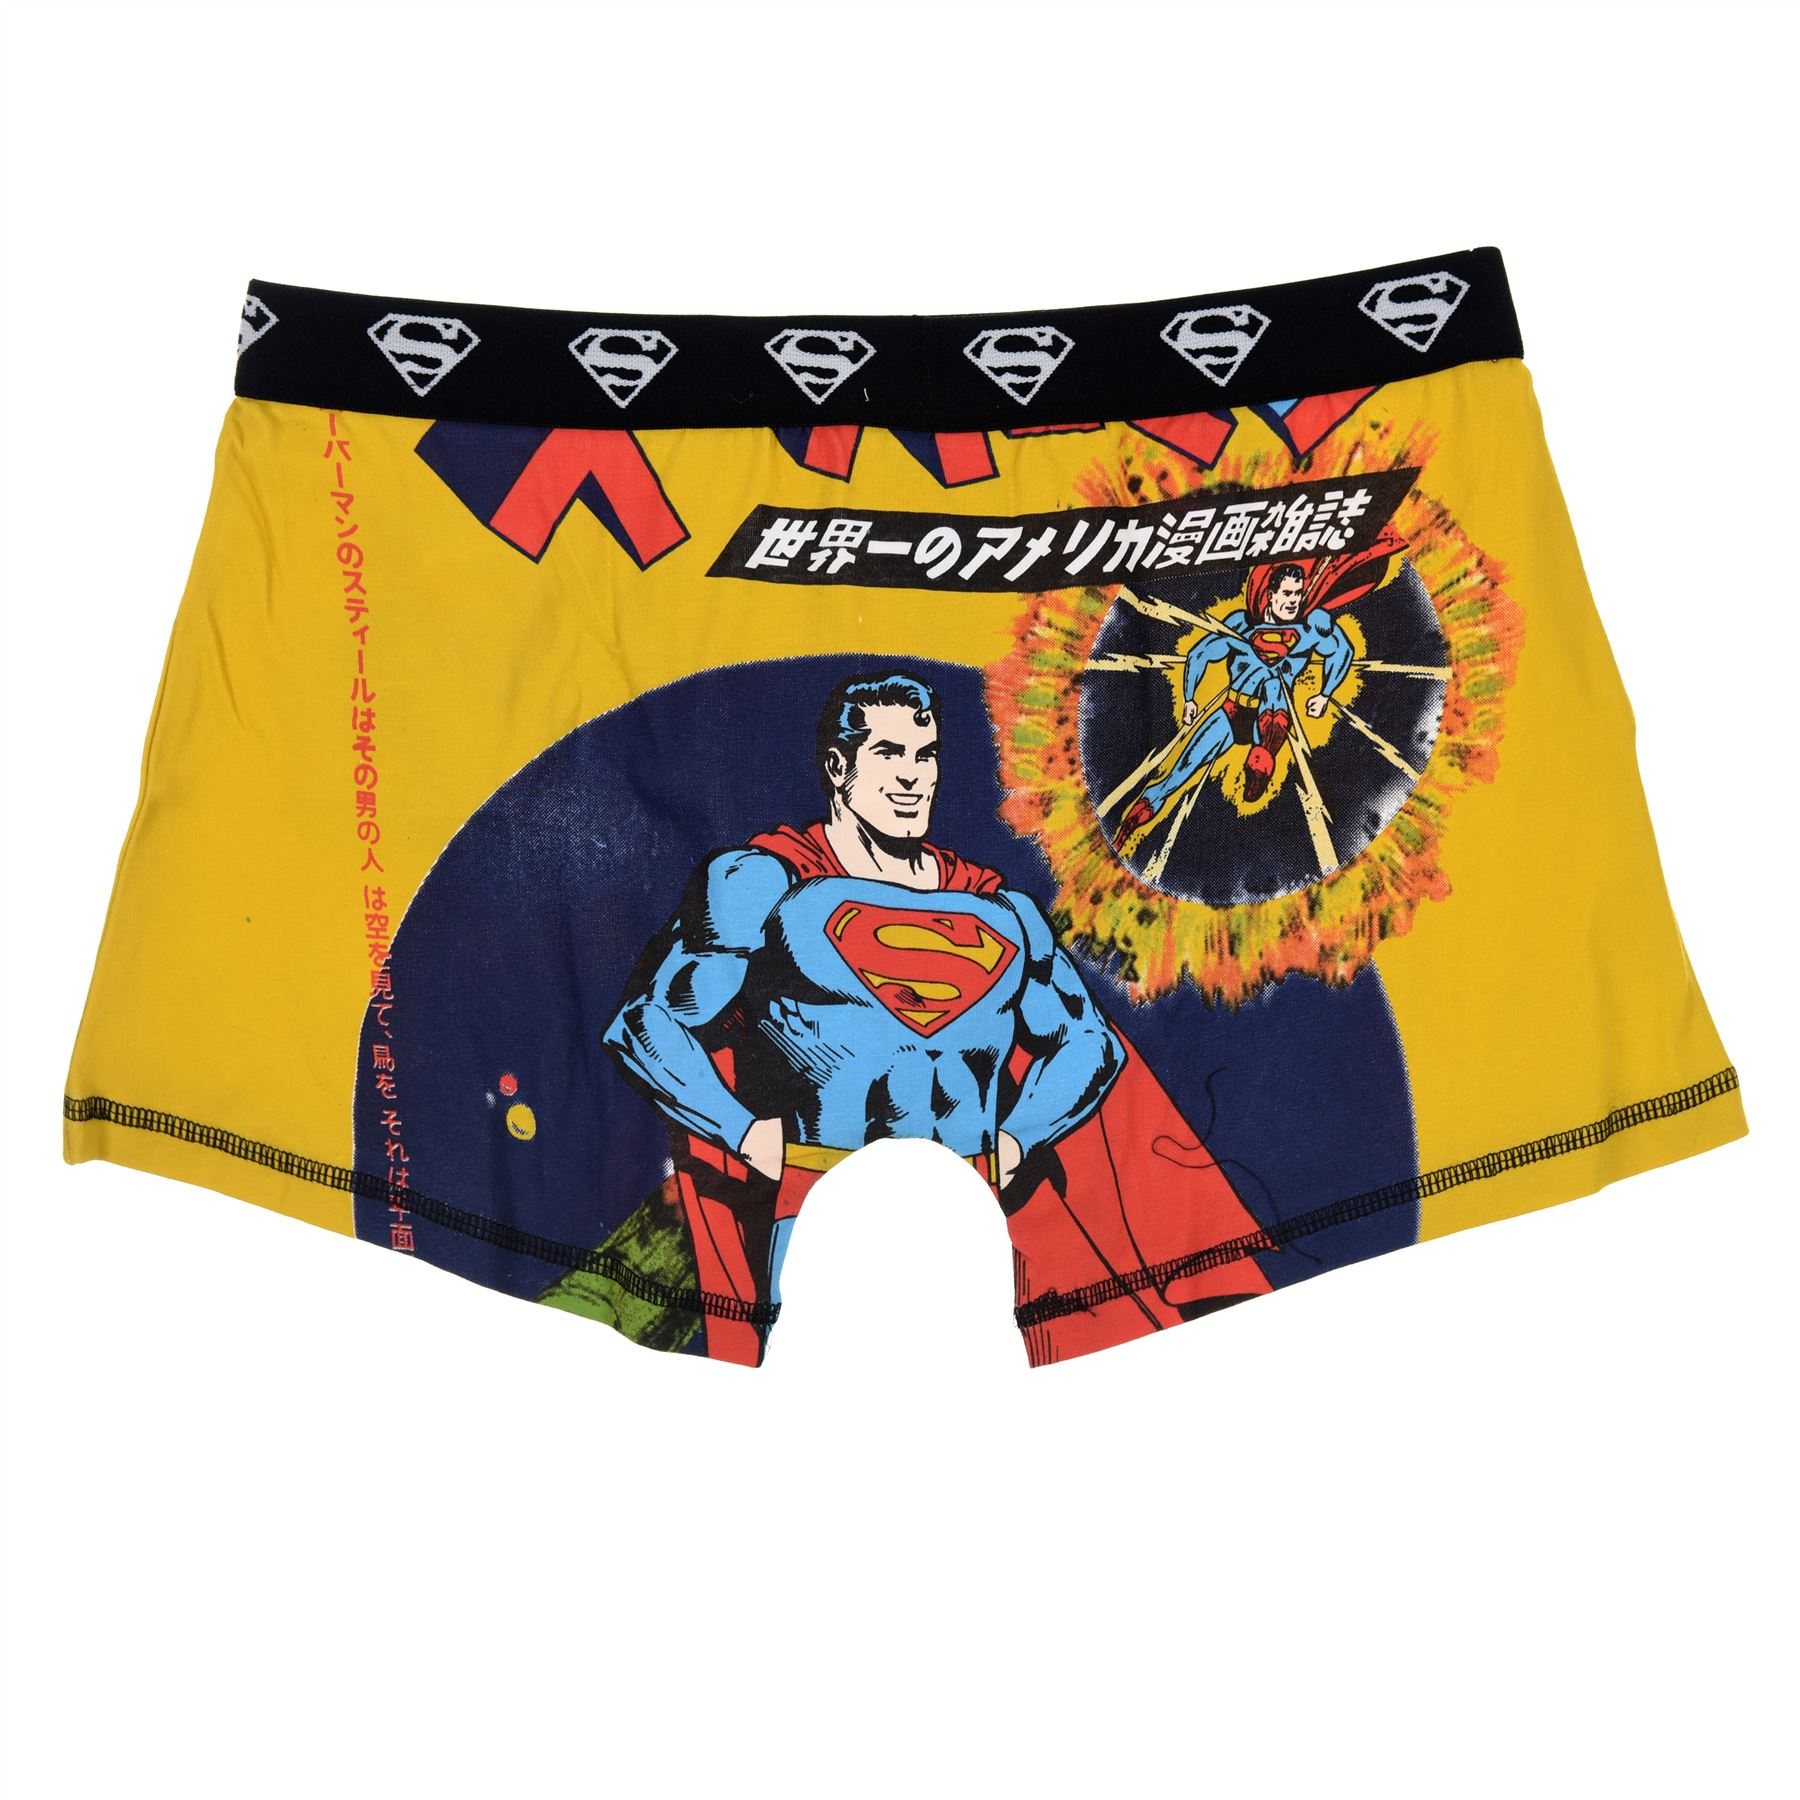 Mens-Official-Character-Trunks-Boxer-Shorts-Boxers-Underwear-2-Pack-Size-S-XL thumbnail 55